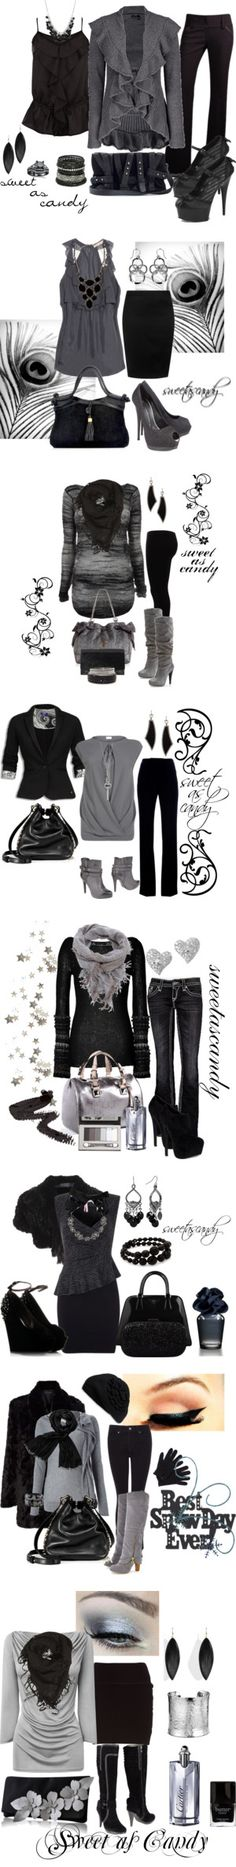 """Black, Gray, and Charcoal"" by sweetlikecandycane on Polyvore"